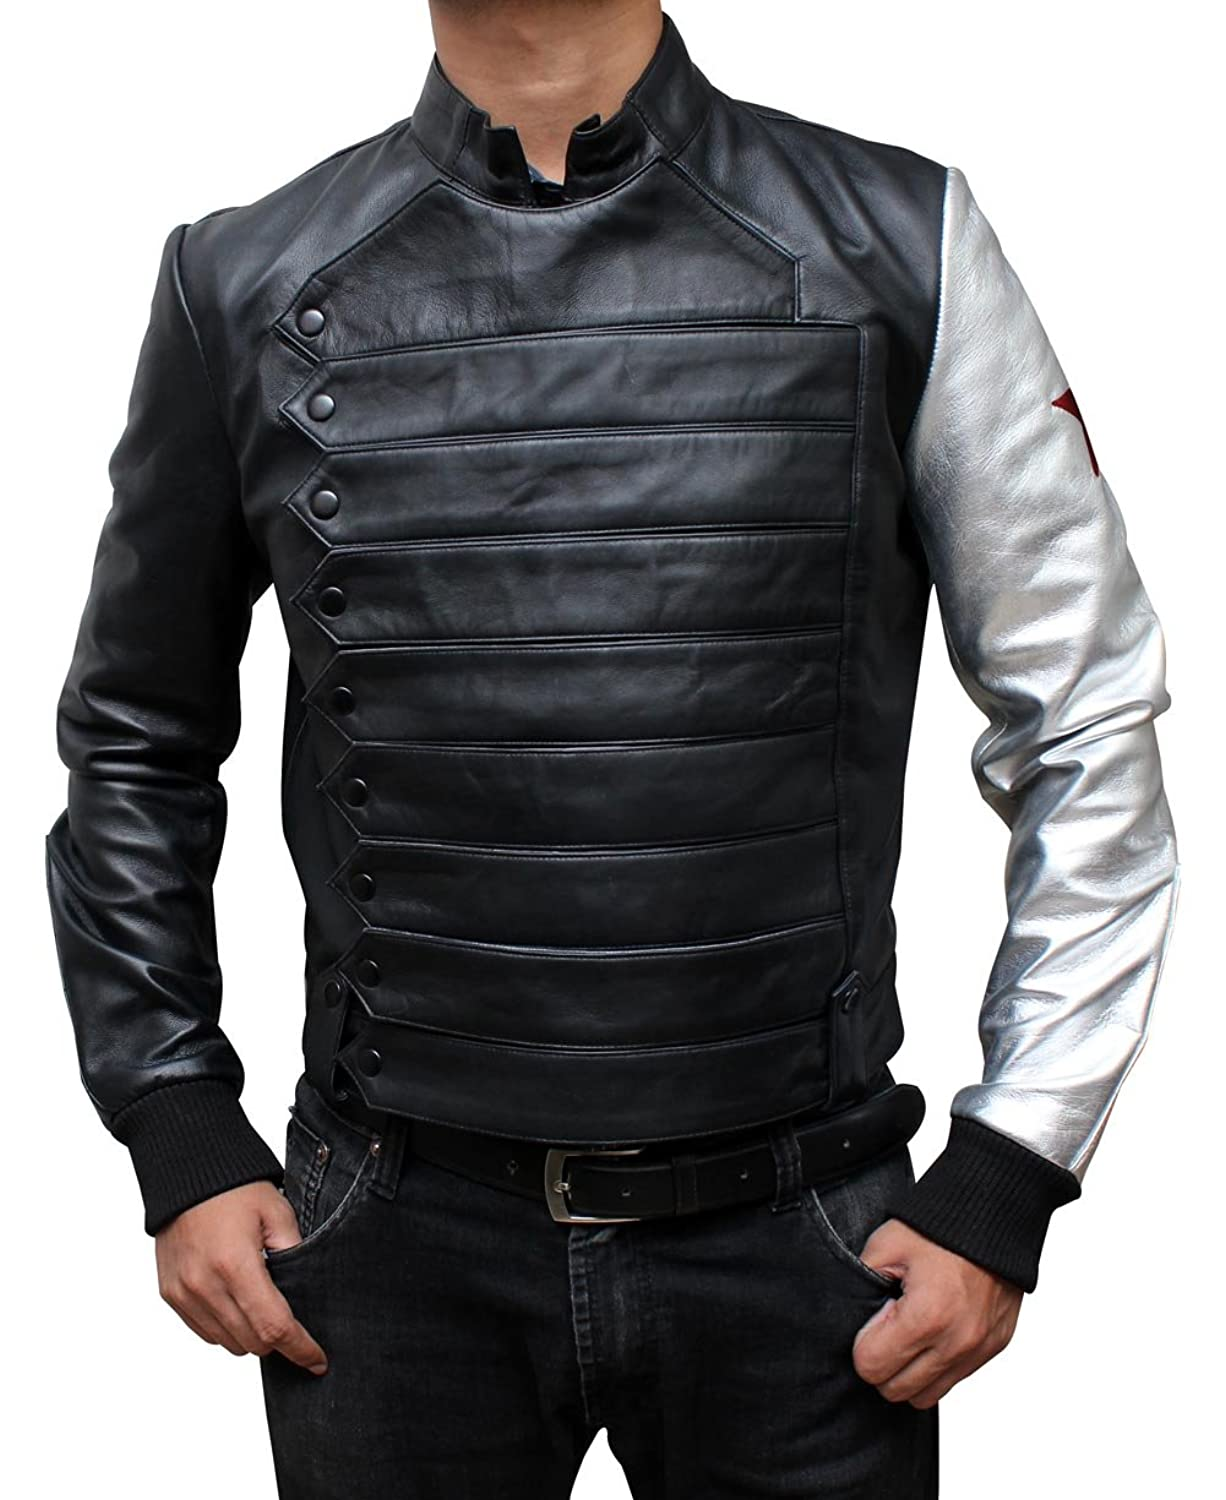 Adult Bucky Barnes Faux Leather Silver Sleeve Jacket - DeluxeAdultCostumes.com